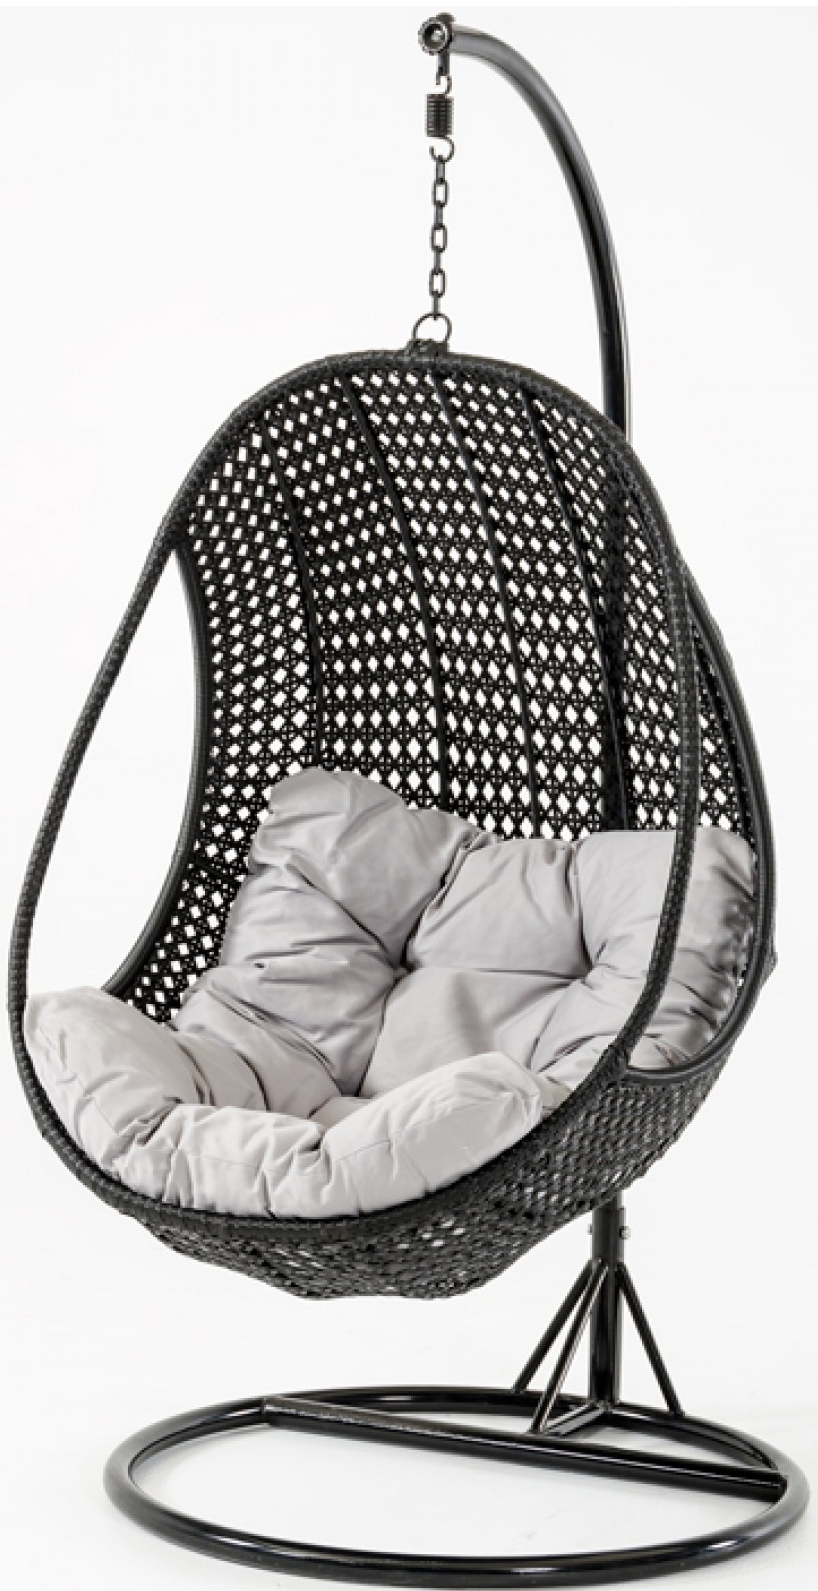 Bon Find A Deal On A Hanging Chair For Outdoors At AdvancedInteriorDesigns.com  ...